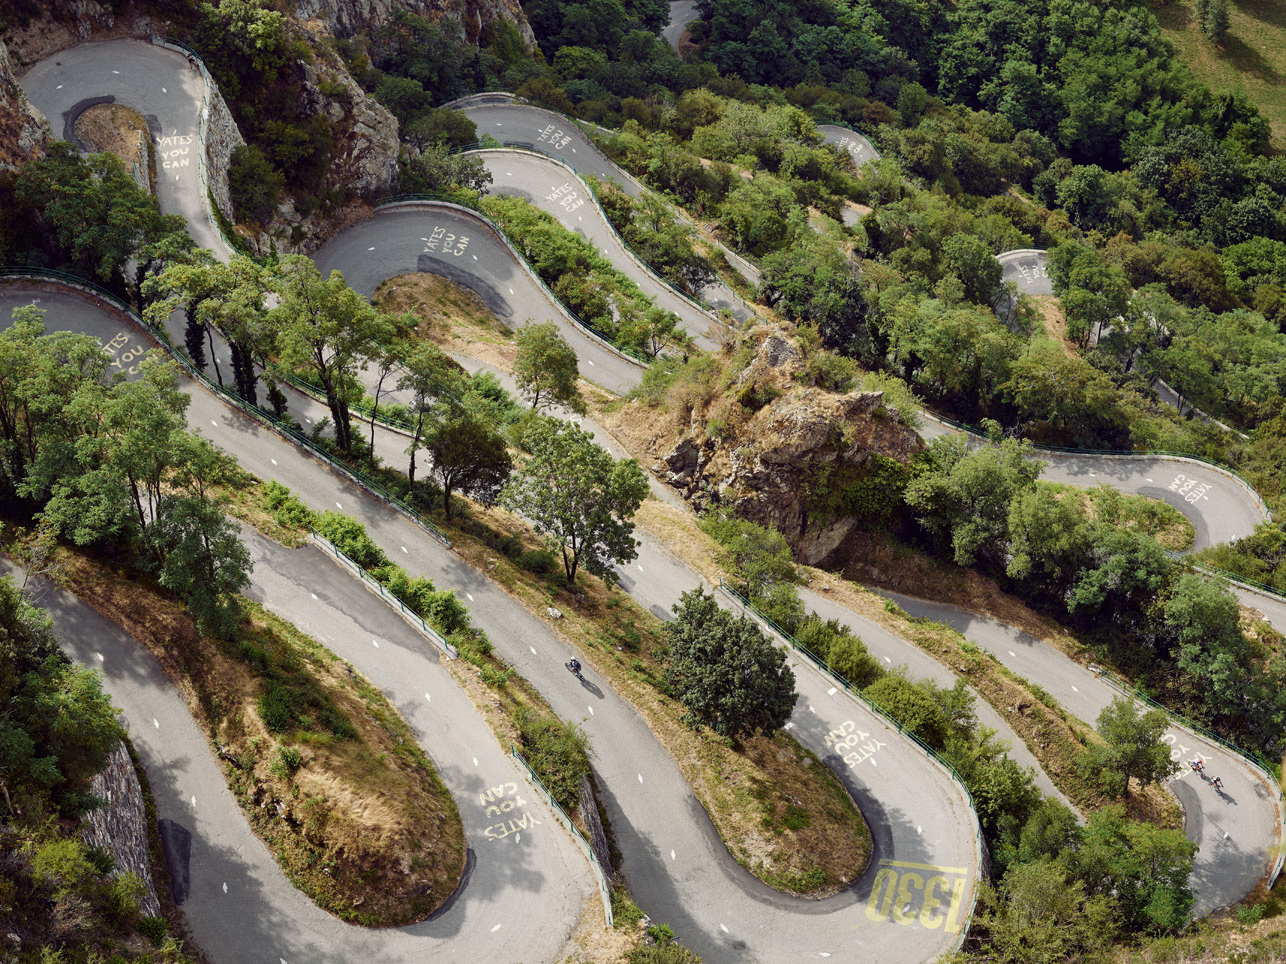 Lacets de Montvernier: sometimes described as an Alpine Scalextric, the climb has eighteen hairpins that switch back every 150m